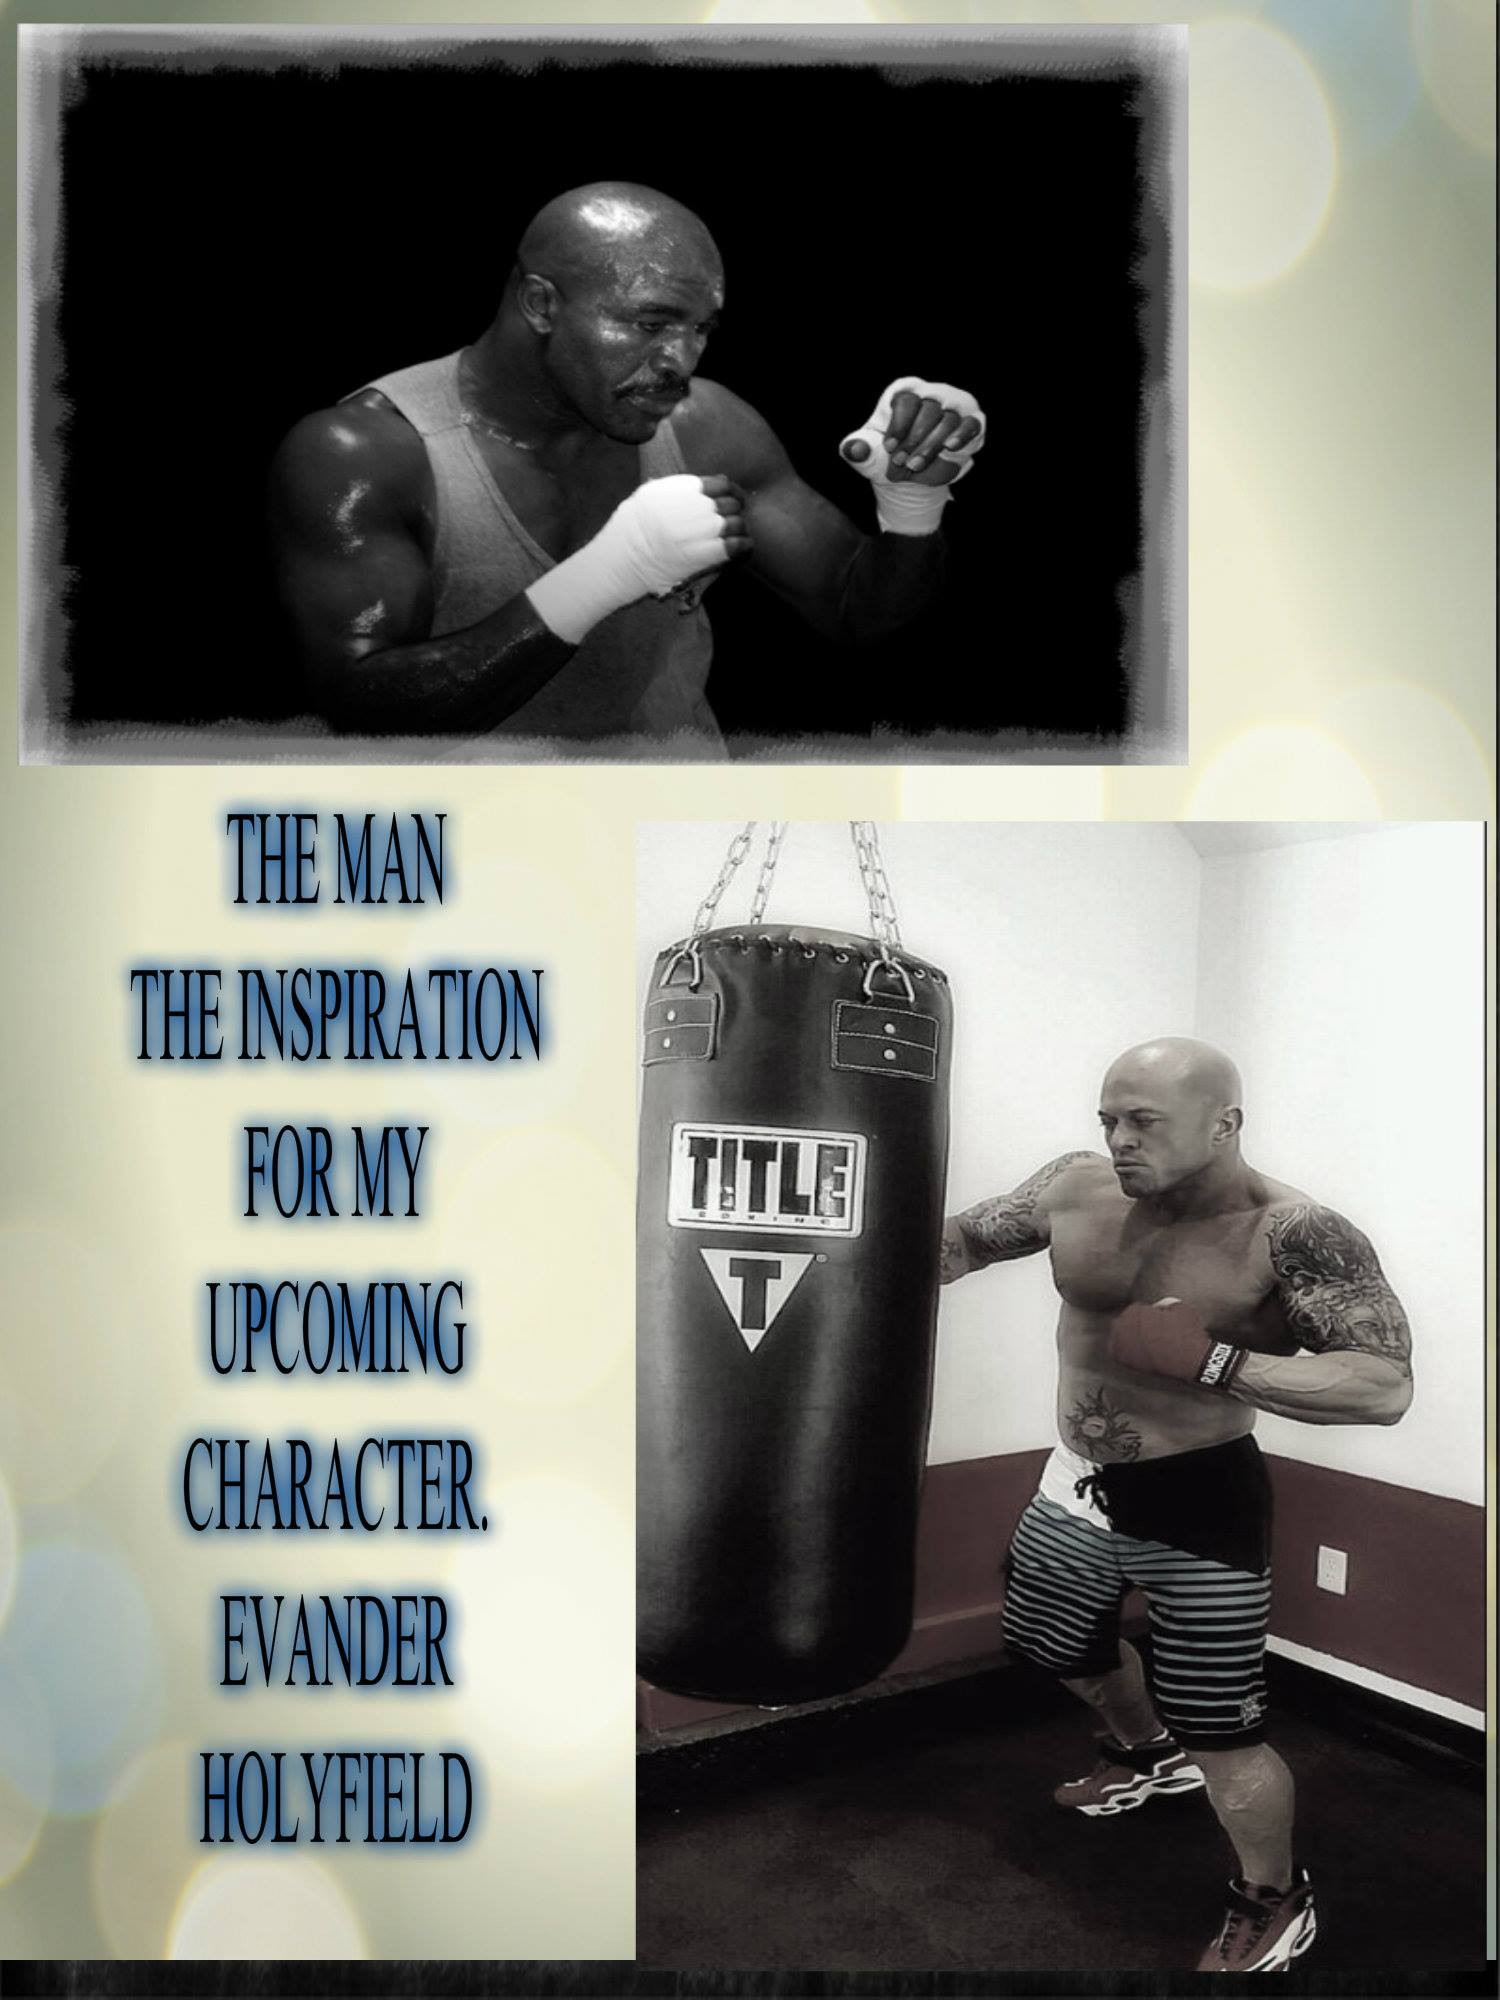 Boston Romance Physique Model Actor John Quinlan Evander Holyfield 2015 Pilot Film Character Creation Inspiration Poster. #JohnQuinlan